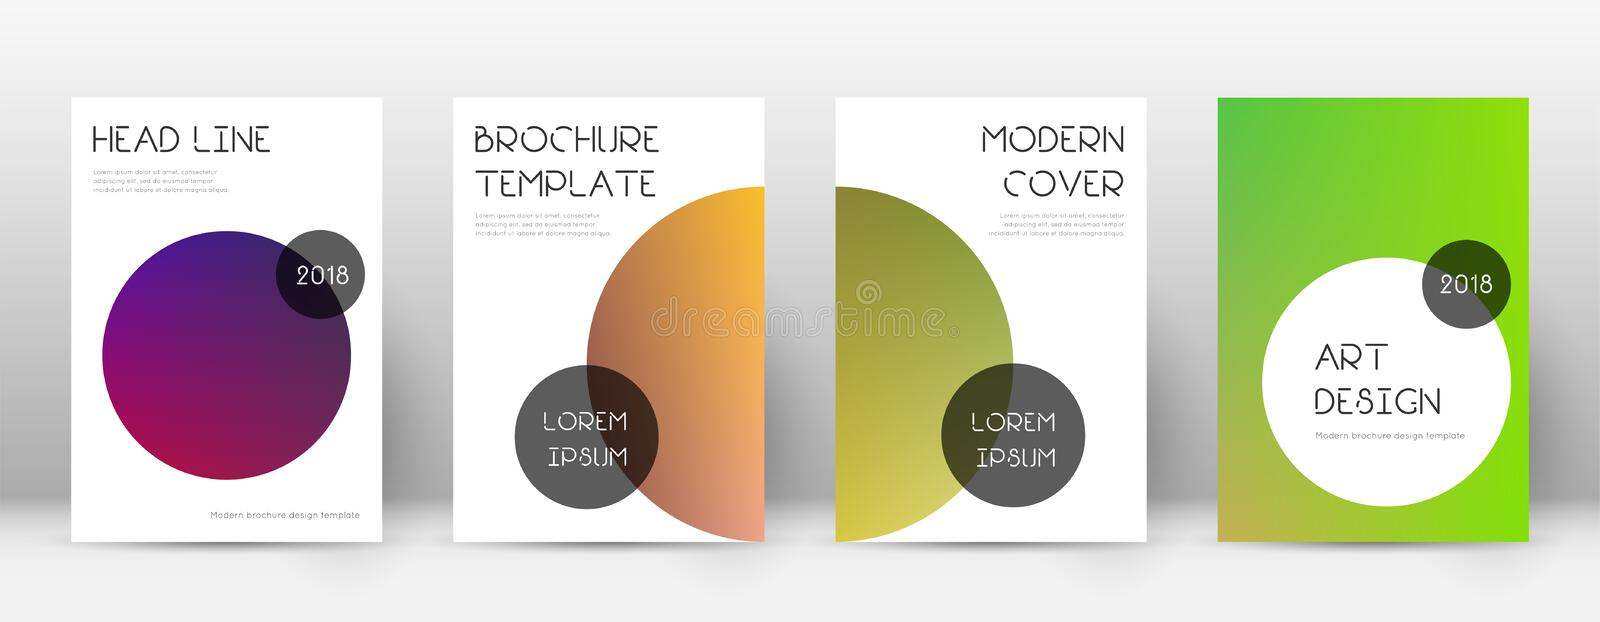 Flyer layout. Trendy wonderful template for Brochure, Annual Report, Magazine, Poster, Corporate Presentation, Portfolio, Flyer. Beauteous gradient cover page royalty free illustration